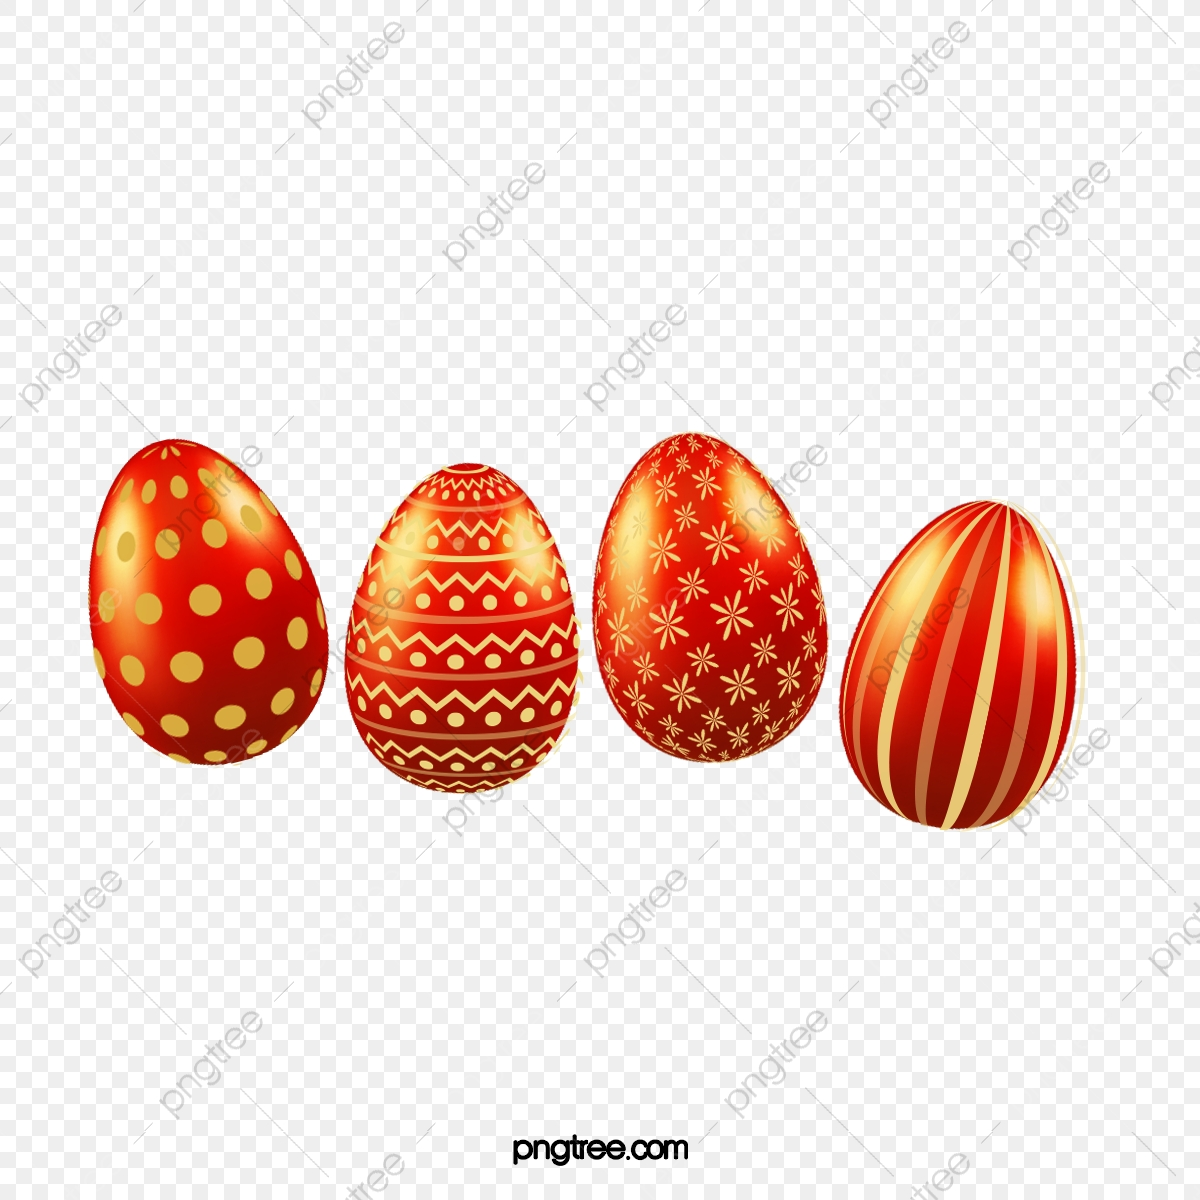 Red Easter Egg Vector Easter Vector Egg Vector Egg Png Transparent Clipart Image And Psd File For Free Download